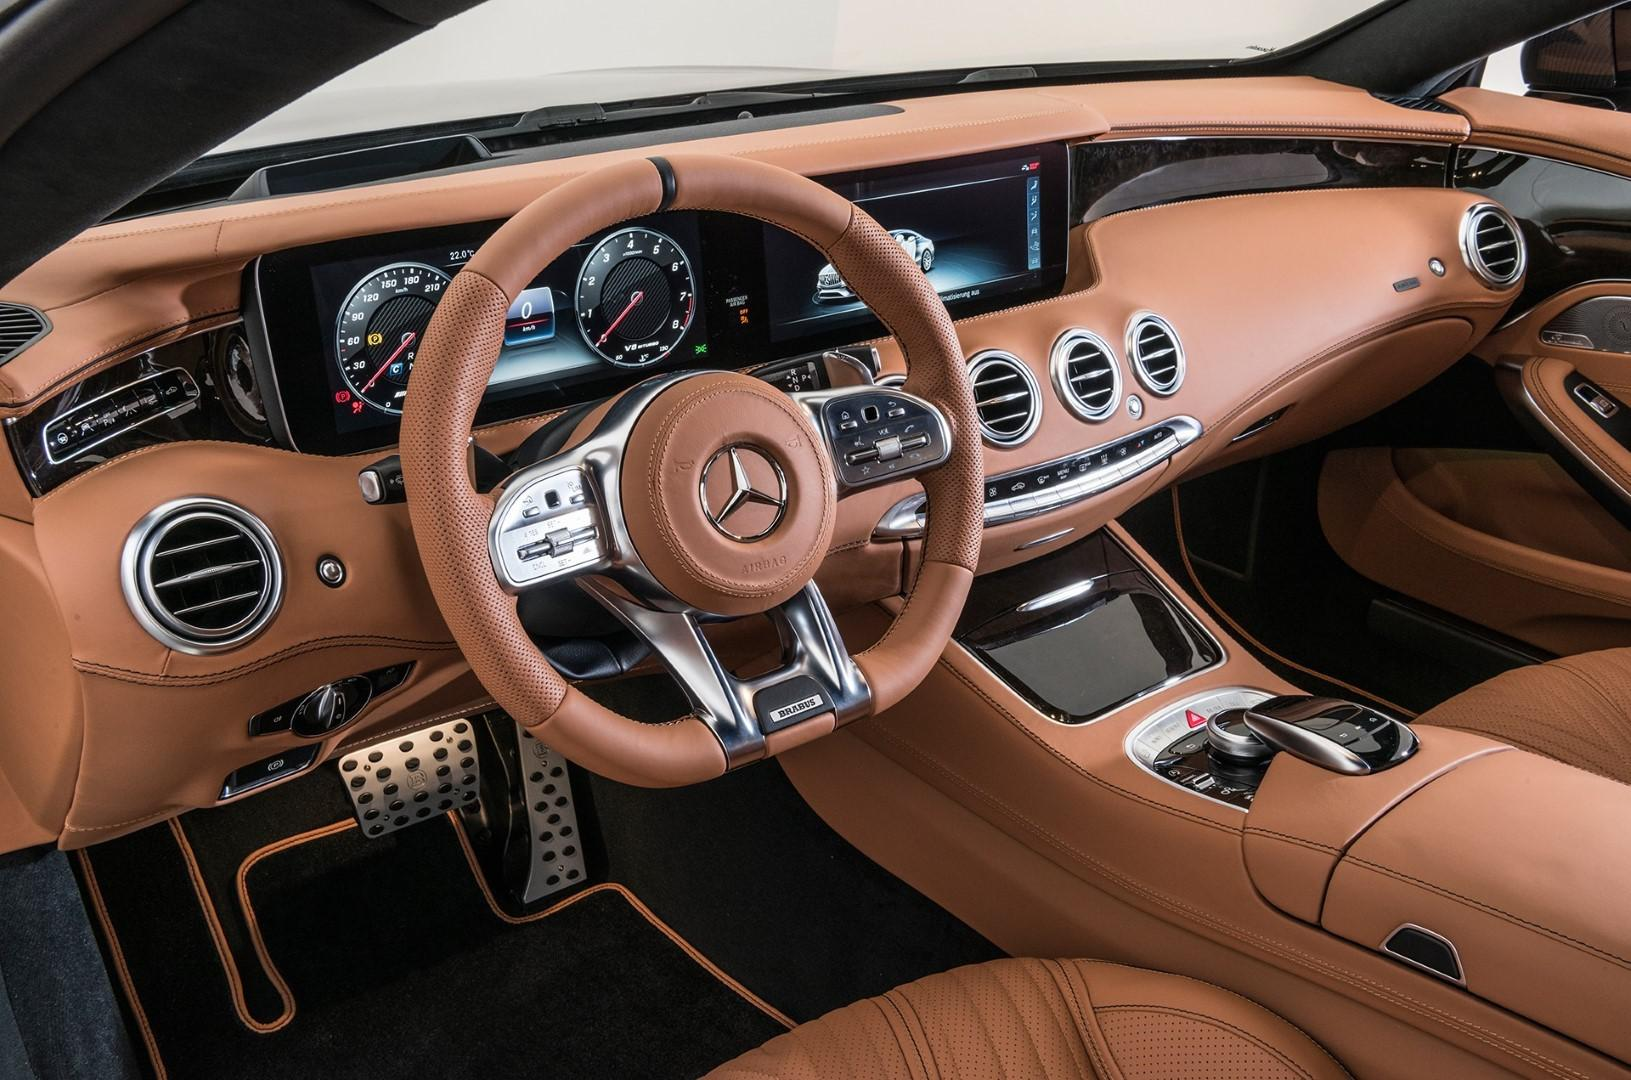 brabus-800-performance-mercedes-benz-s63-4matic-coupe-803-4.jpg